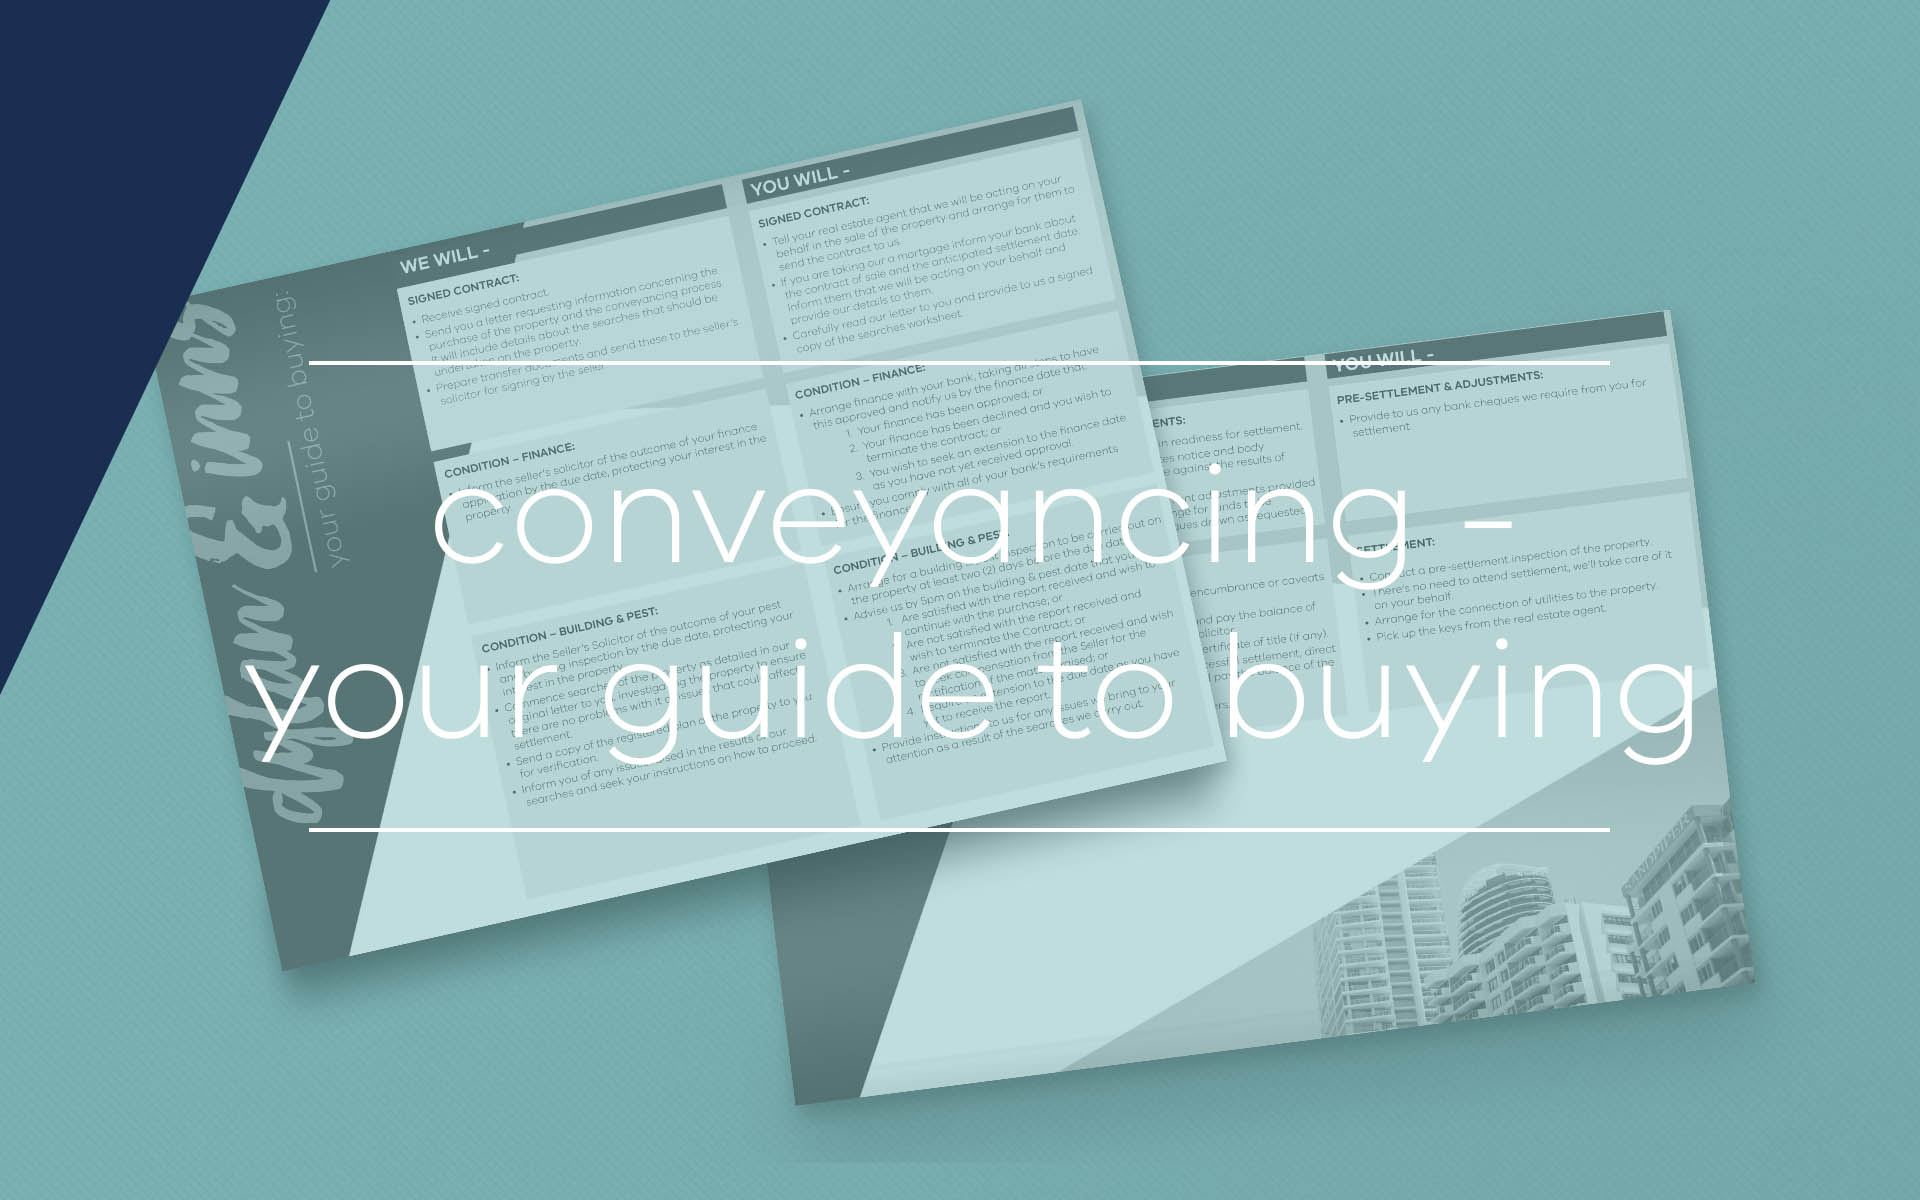 This fact sheet outlines what to expect as part of the conveyancing process when buying a property and outlines the responsibilities you have as a buyer.